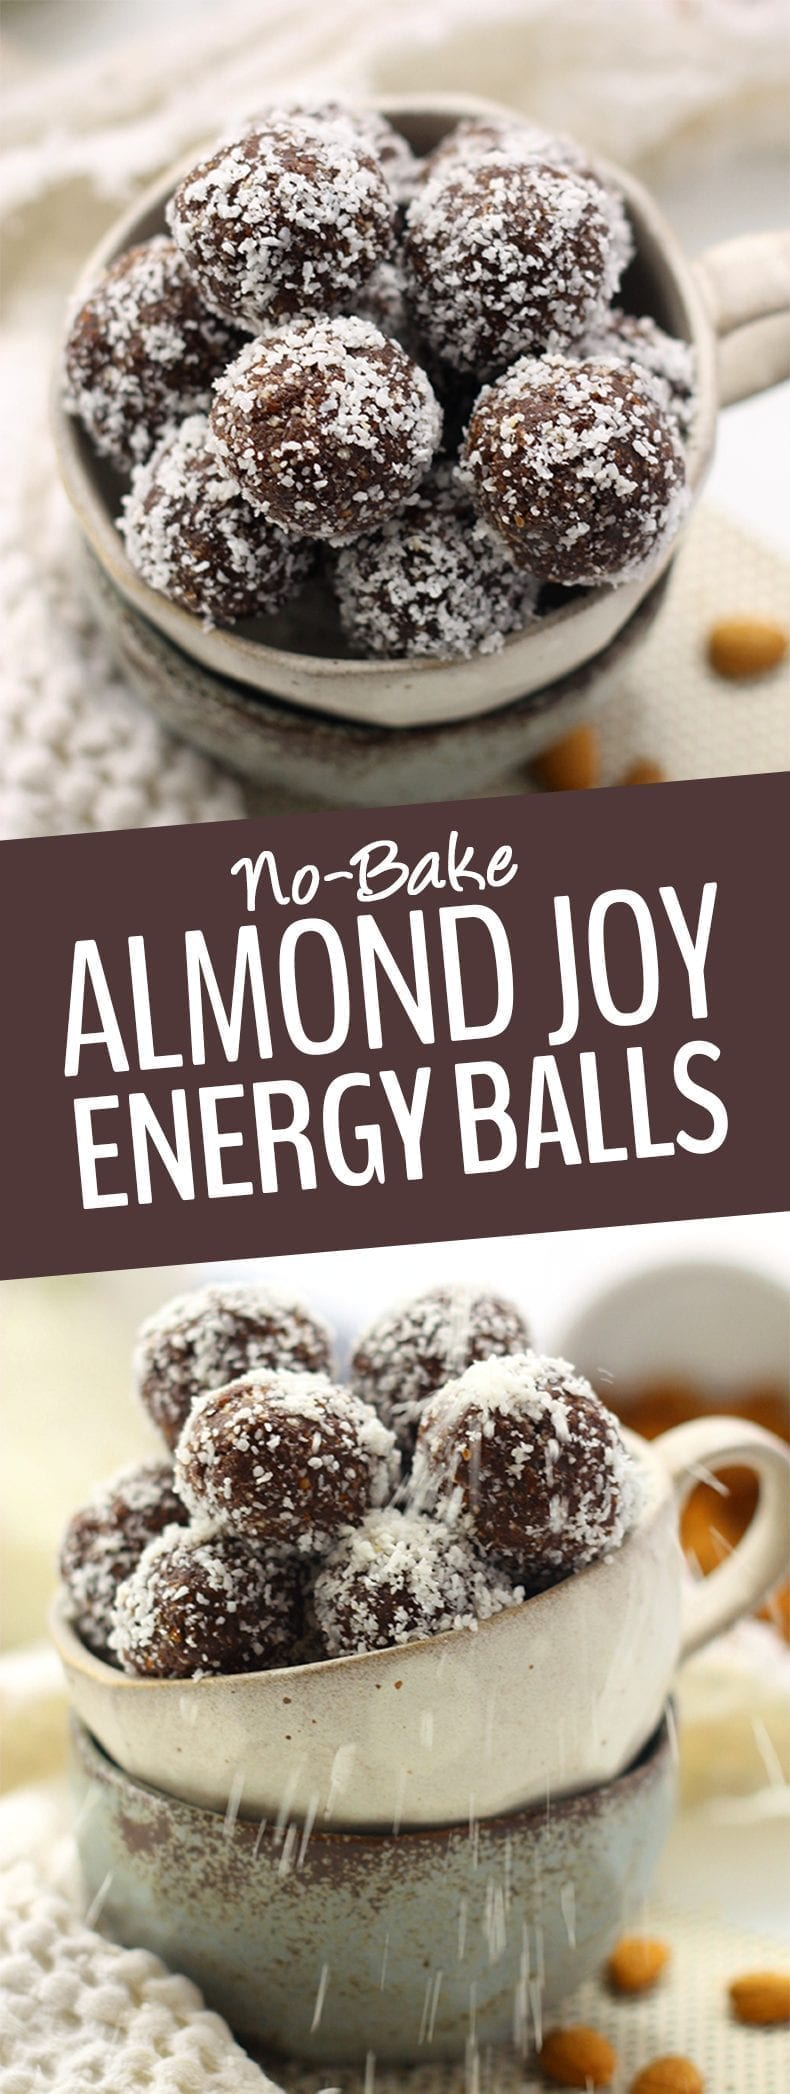 These No-Bake Almond Joy Energy Balls are inspired by the ever popular Almond Joy chocolate bar but without all the gunk! They pack a serious nutrition punch and are also gluten-free, vegan AND paleo #energyballs #almondjoyenergyballs #veganenergyballs